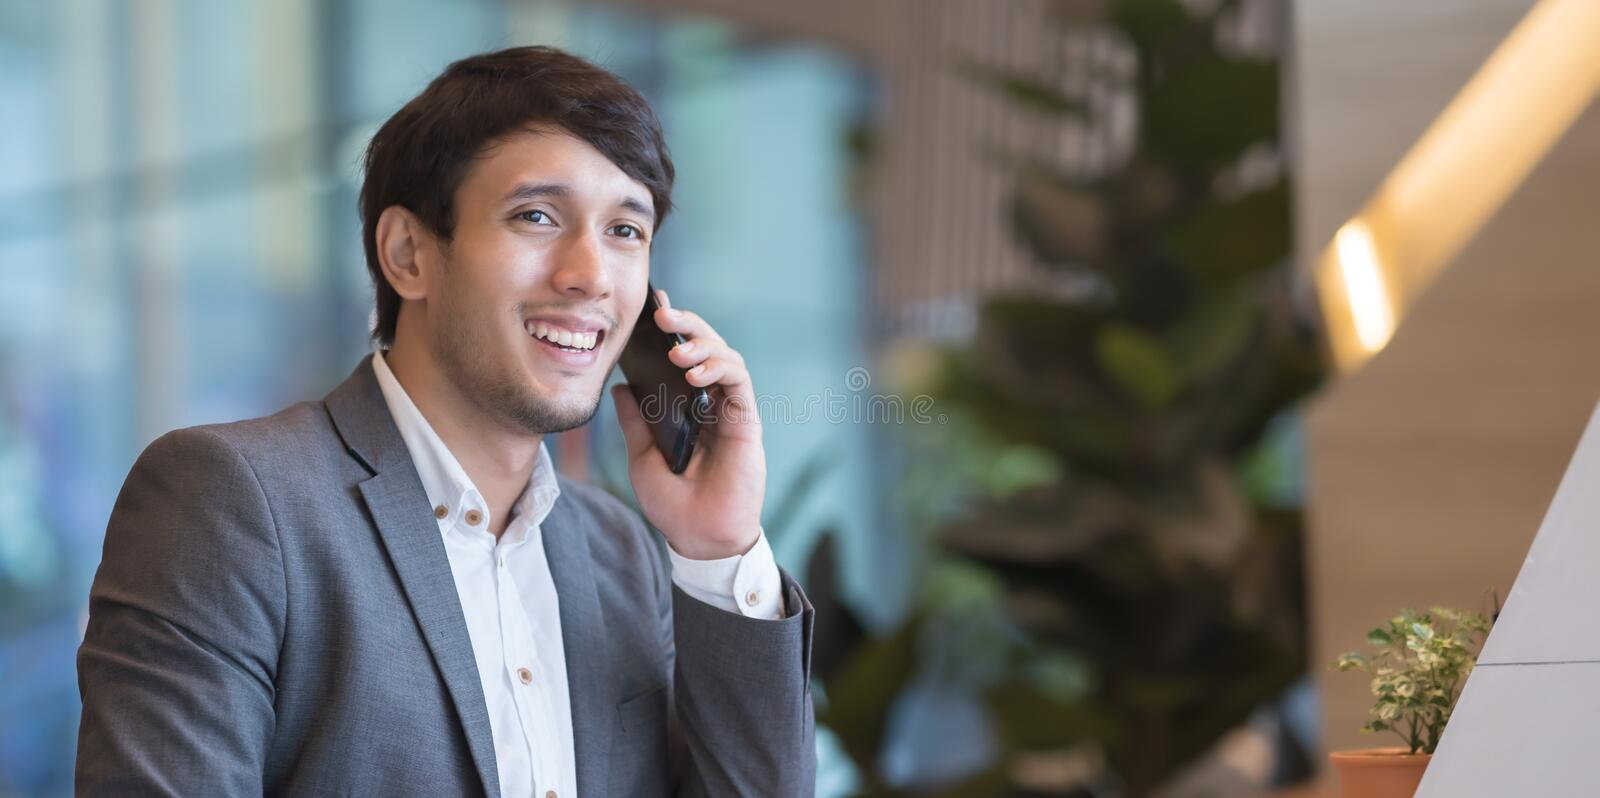 Asian businessman in suit speaking on the phone in office. royalty free stock image